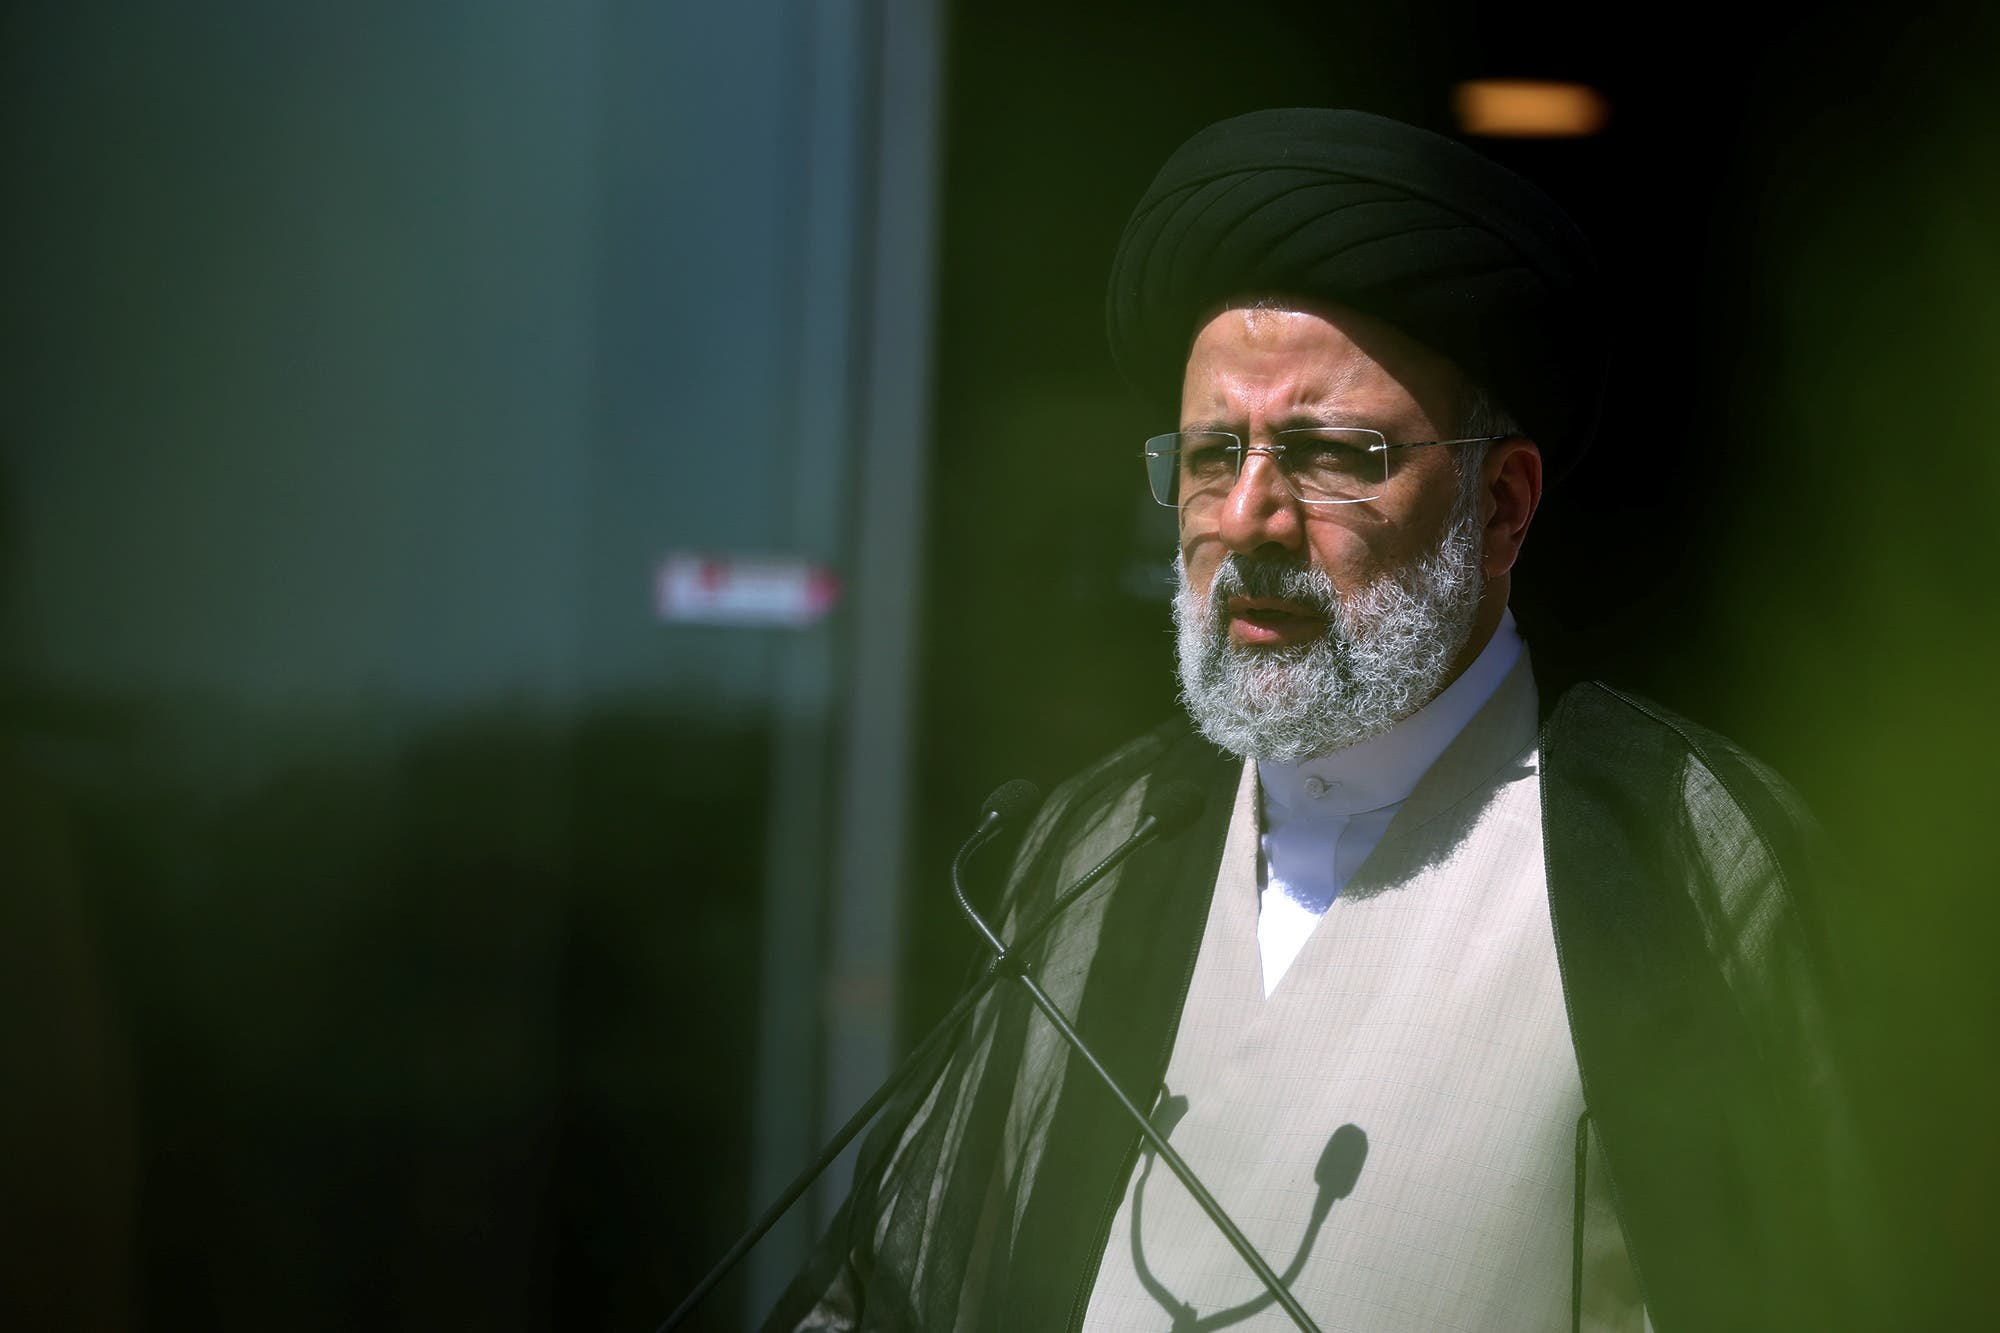 Presidential candidate Ebrahim Raisi speaks with journalists before the start of the last election debate, in Tehran, Iran June 12, 2021. (Reuters)